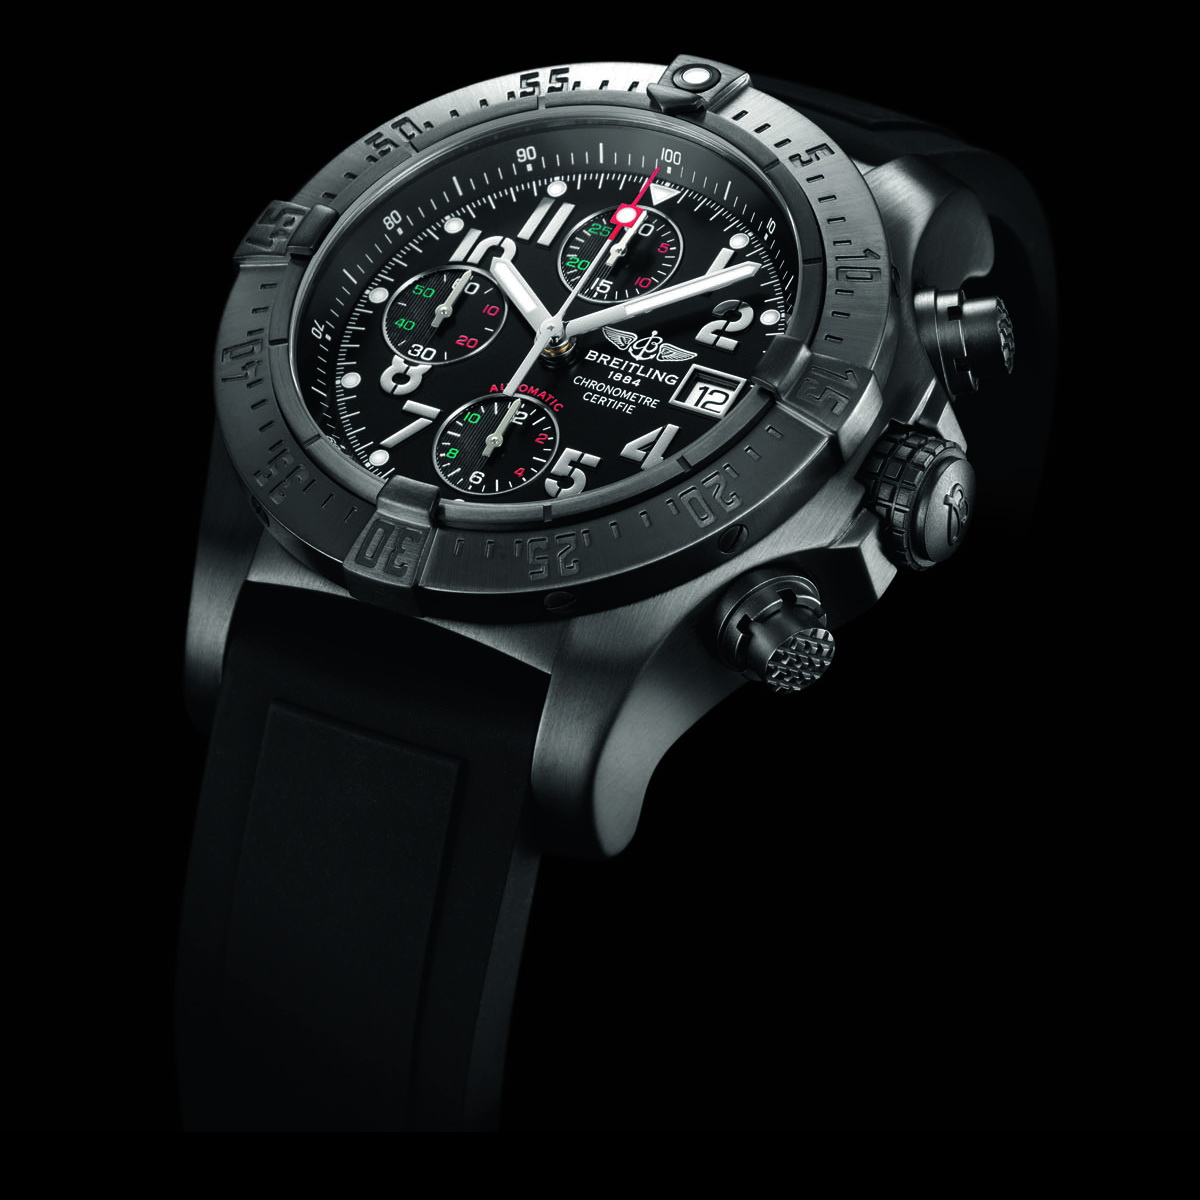 Cheap and high quality breitling seawolf avenger replica watches